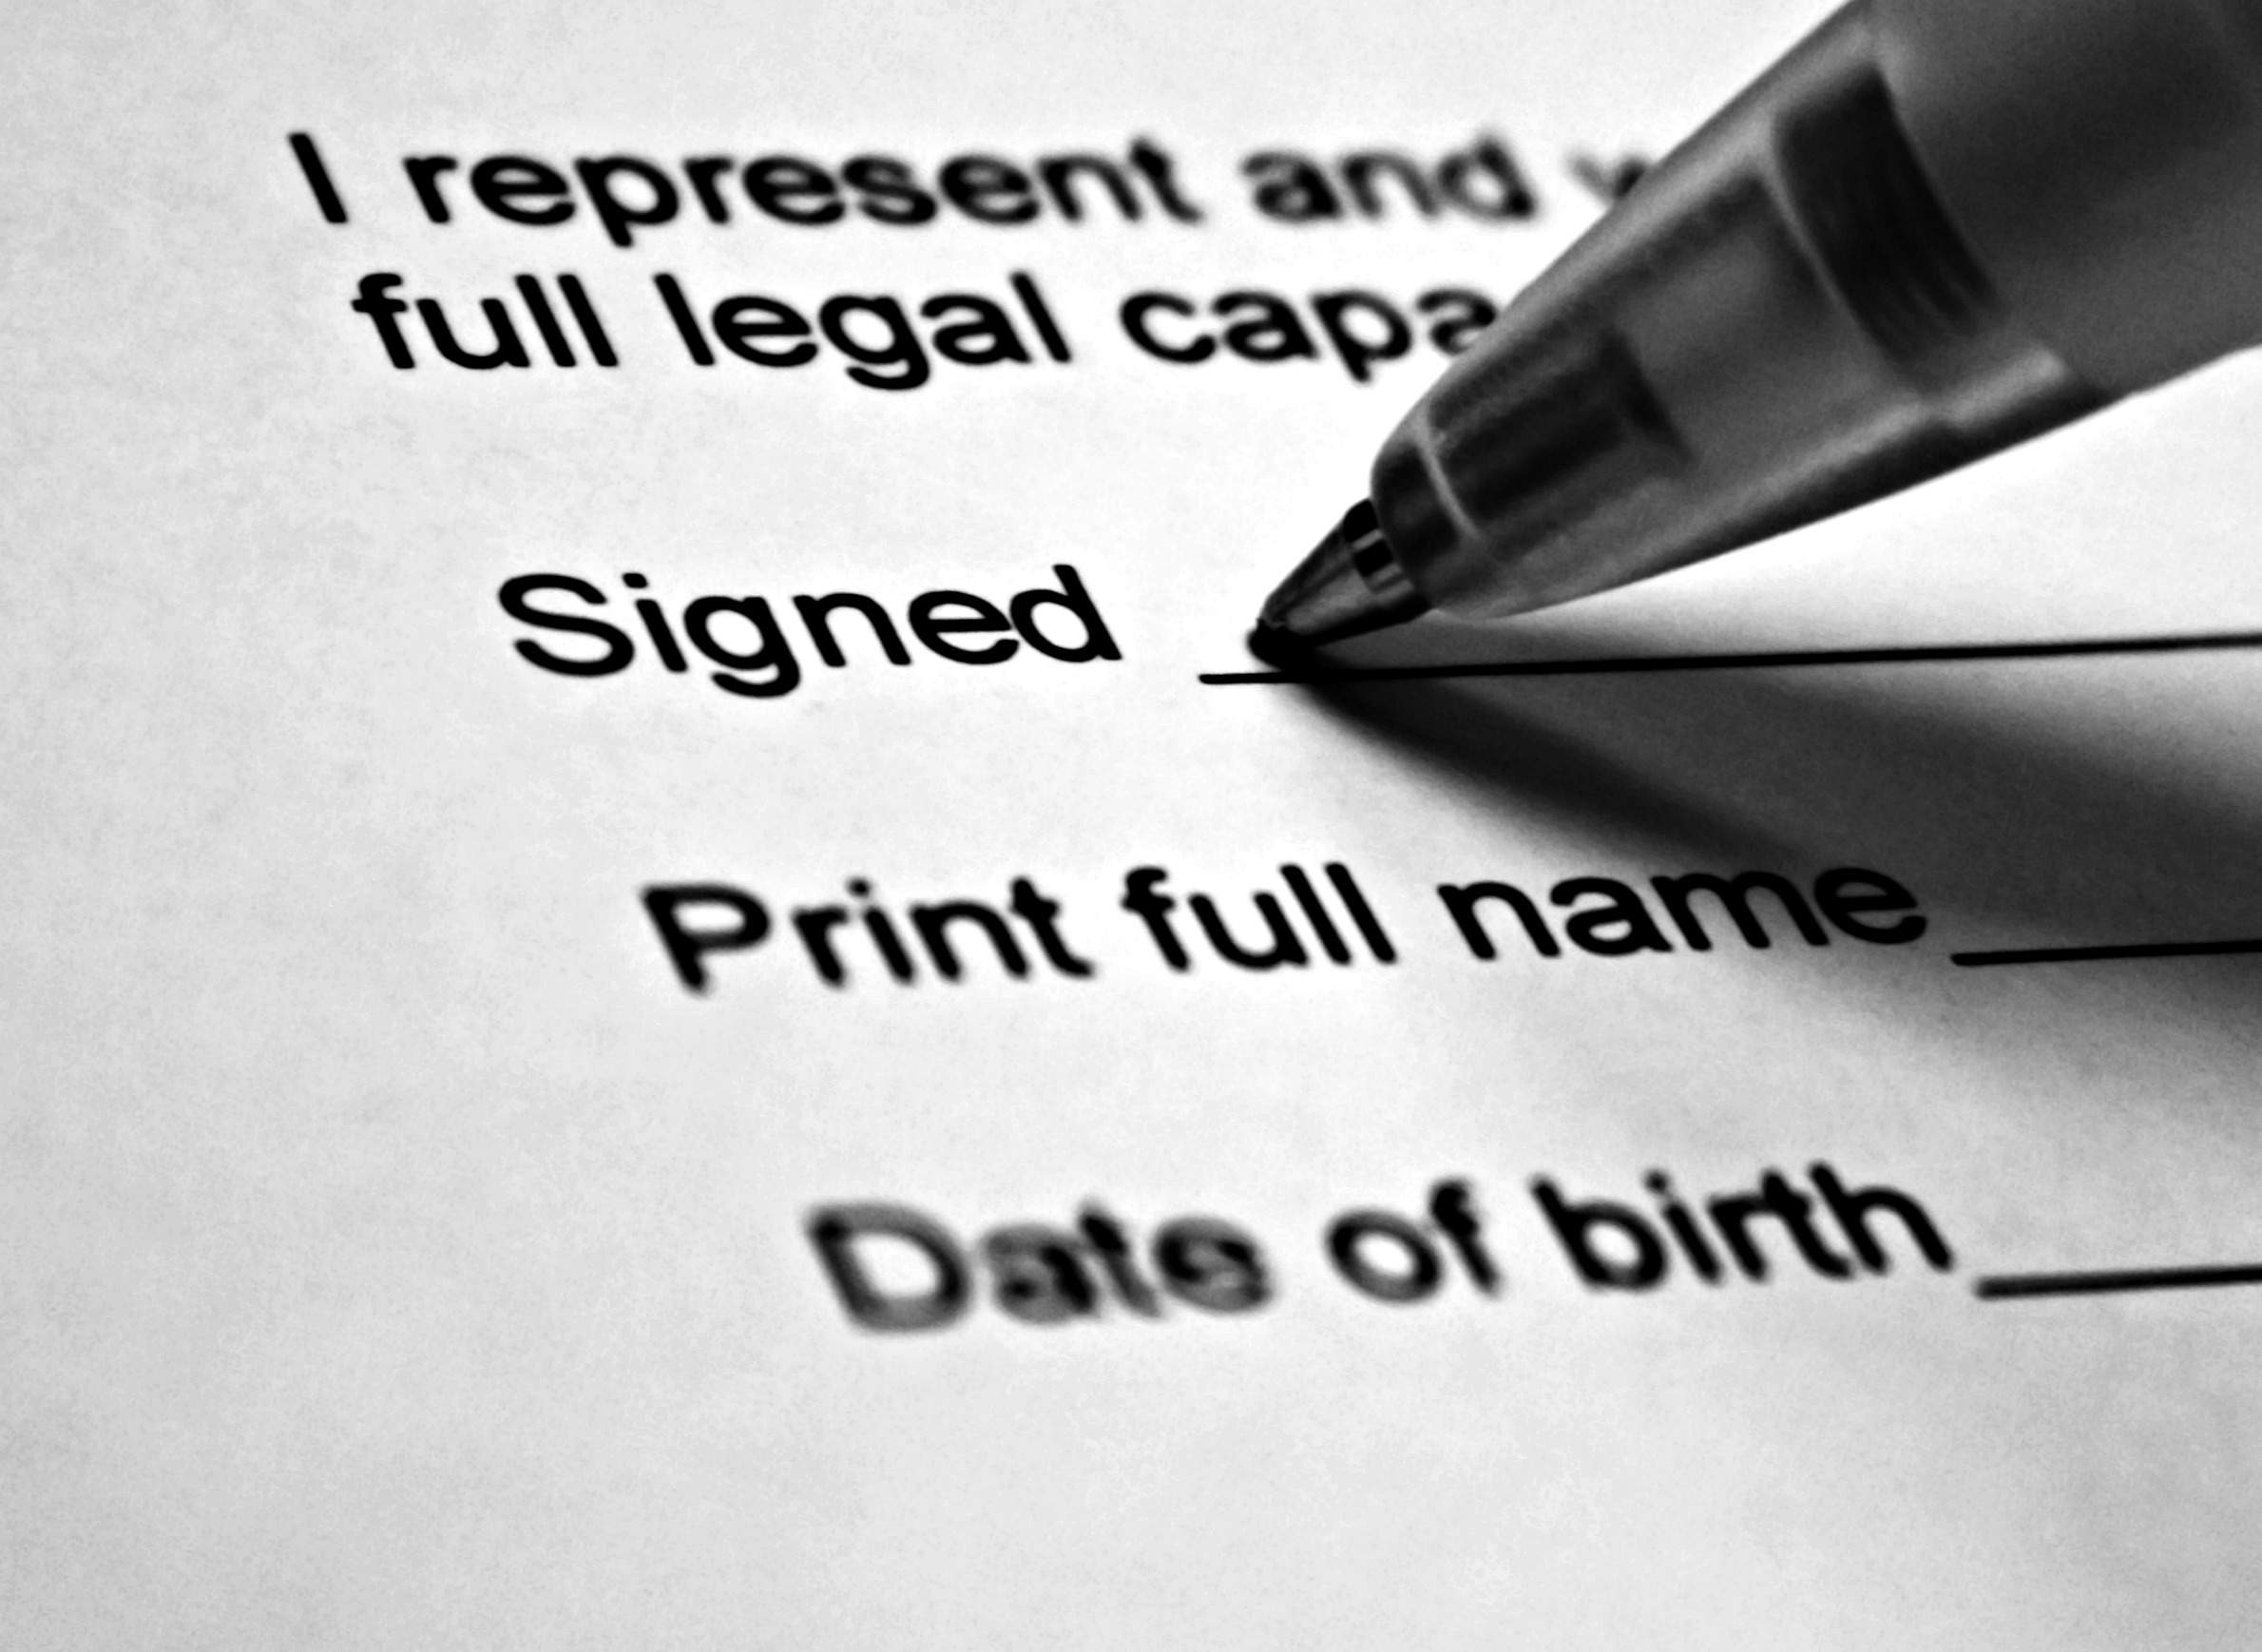 Non Compete Agreements Leave Some Workers With Fewer Options